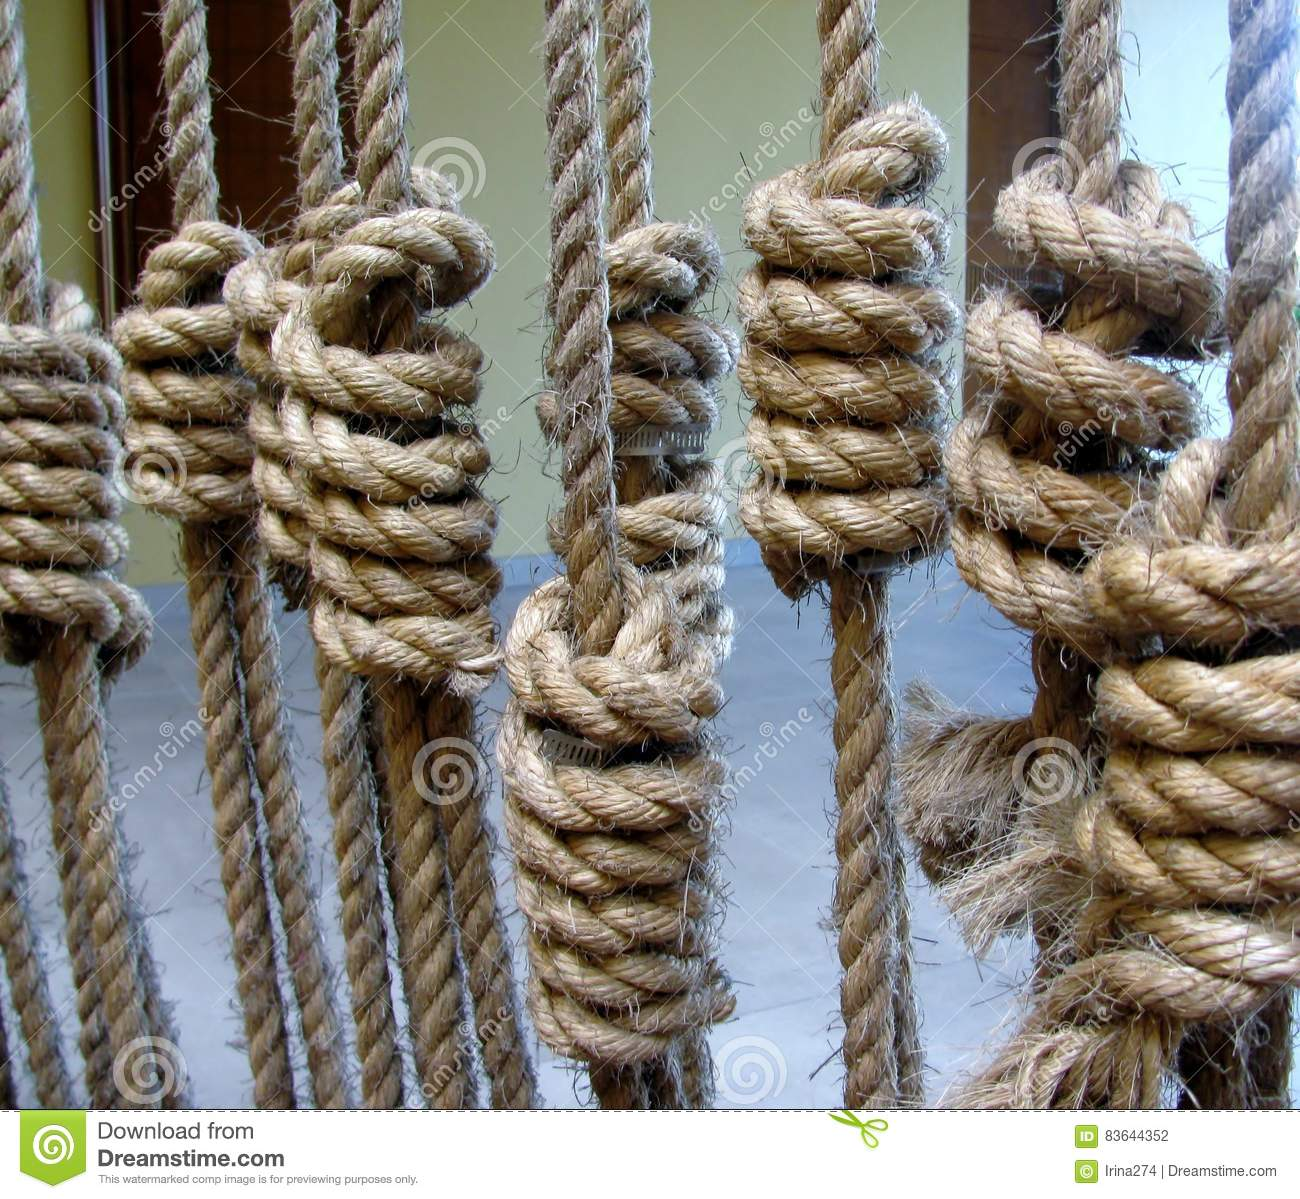 Decorative rope knots stock photo  Image of brown, equipment